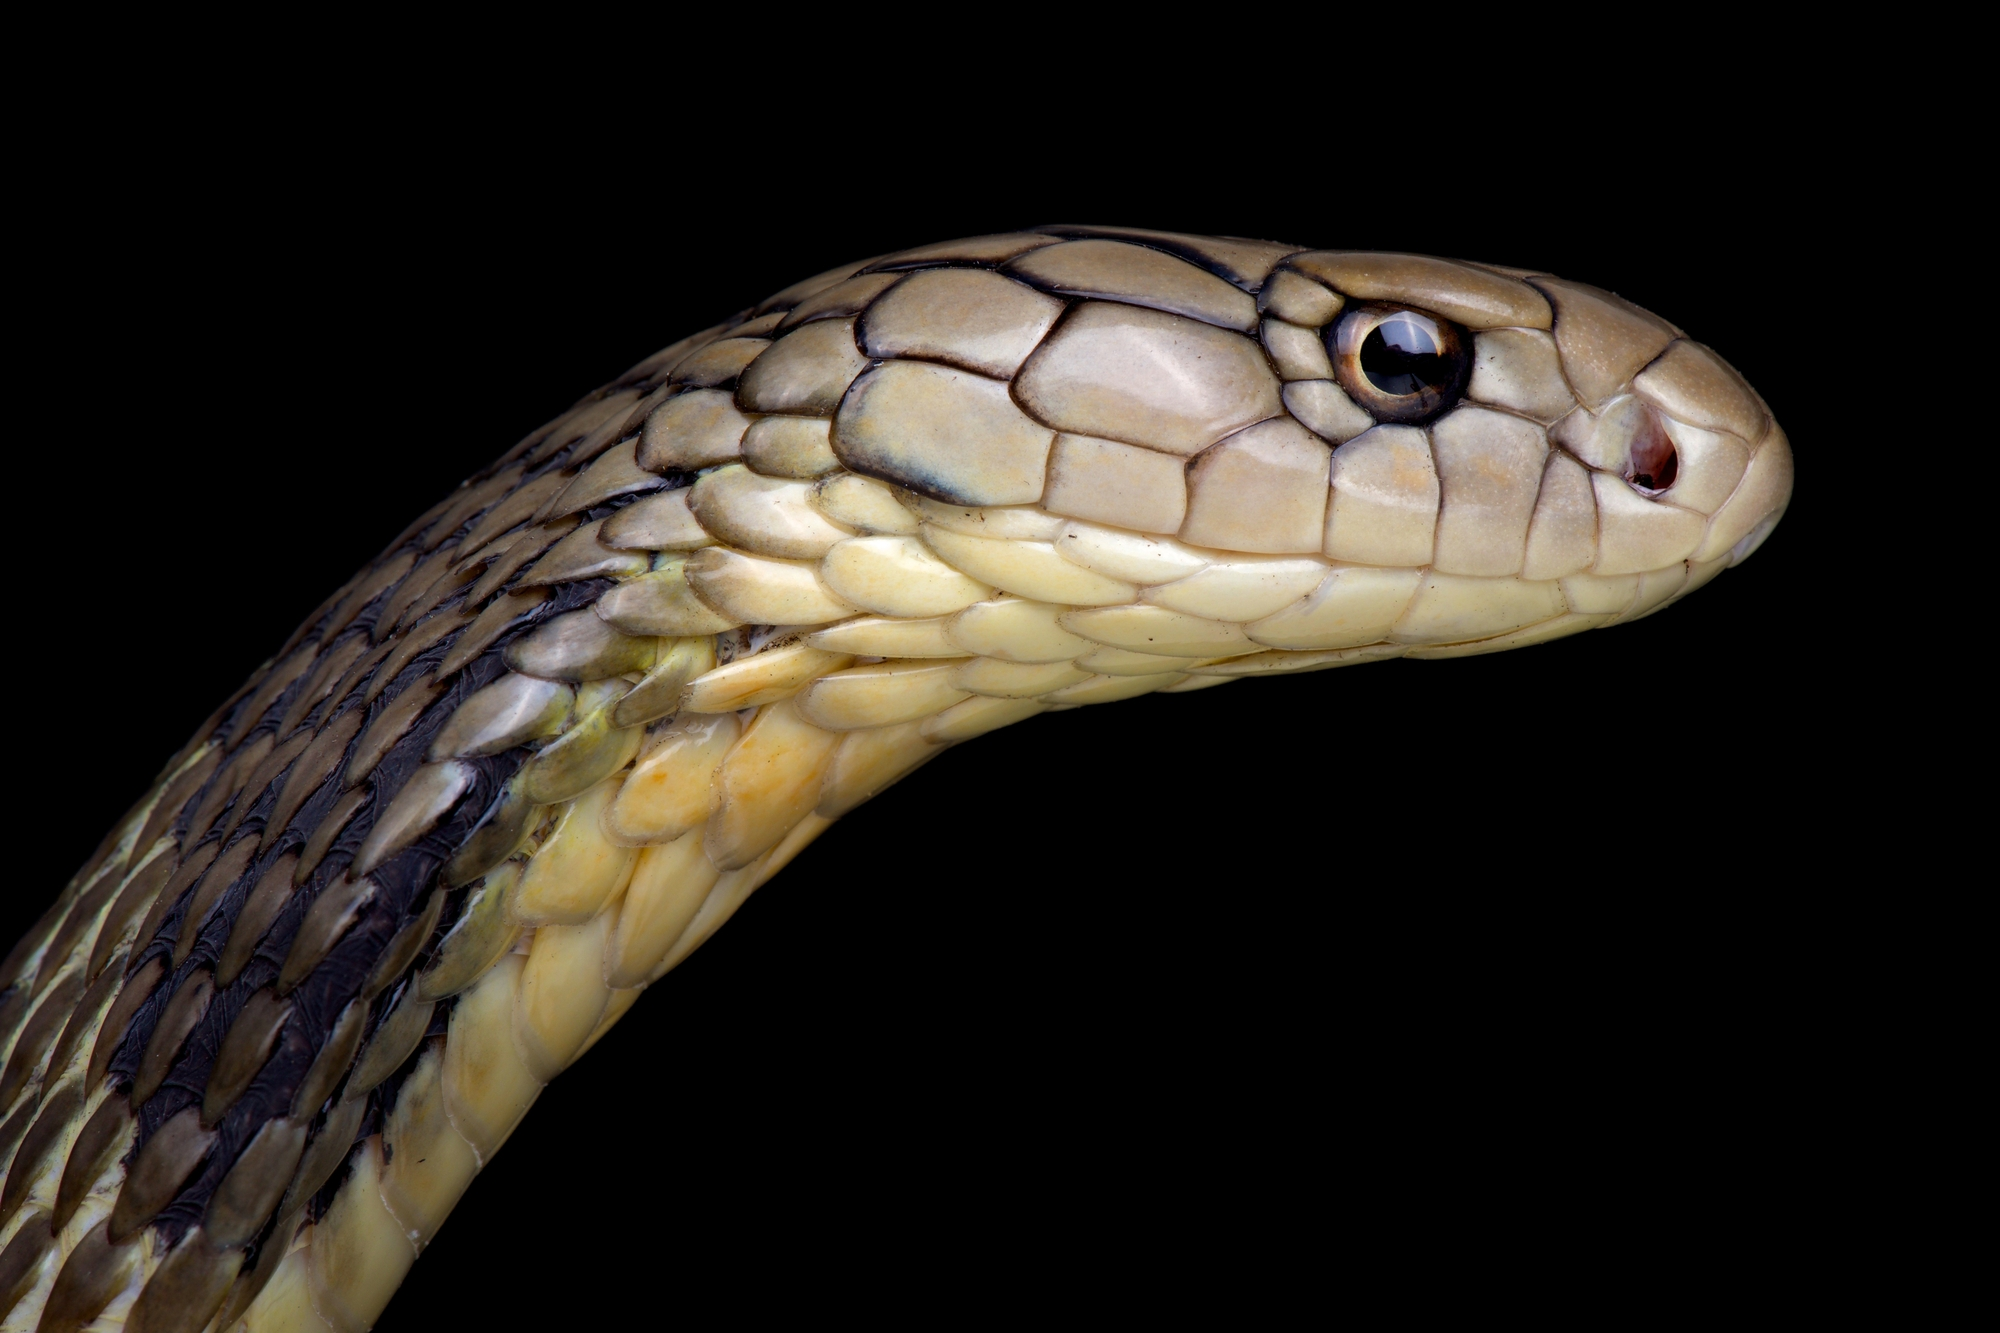 DNA study suggests snakes may be source of coronavirus outbreak